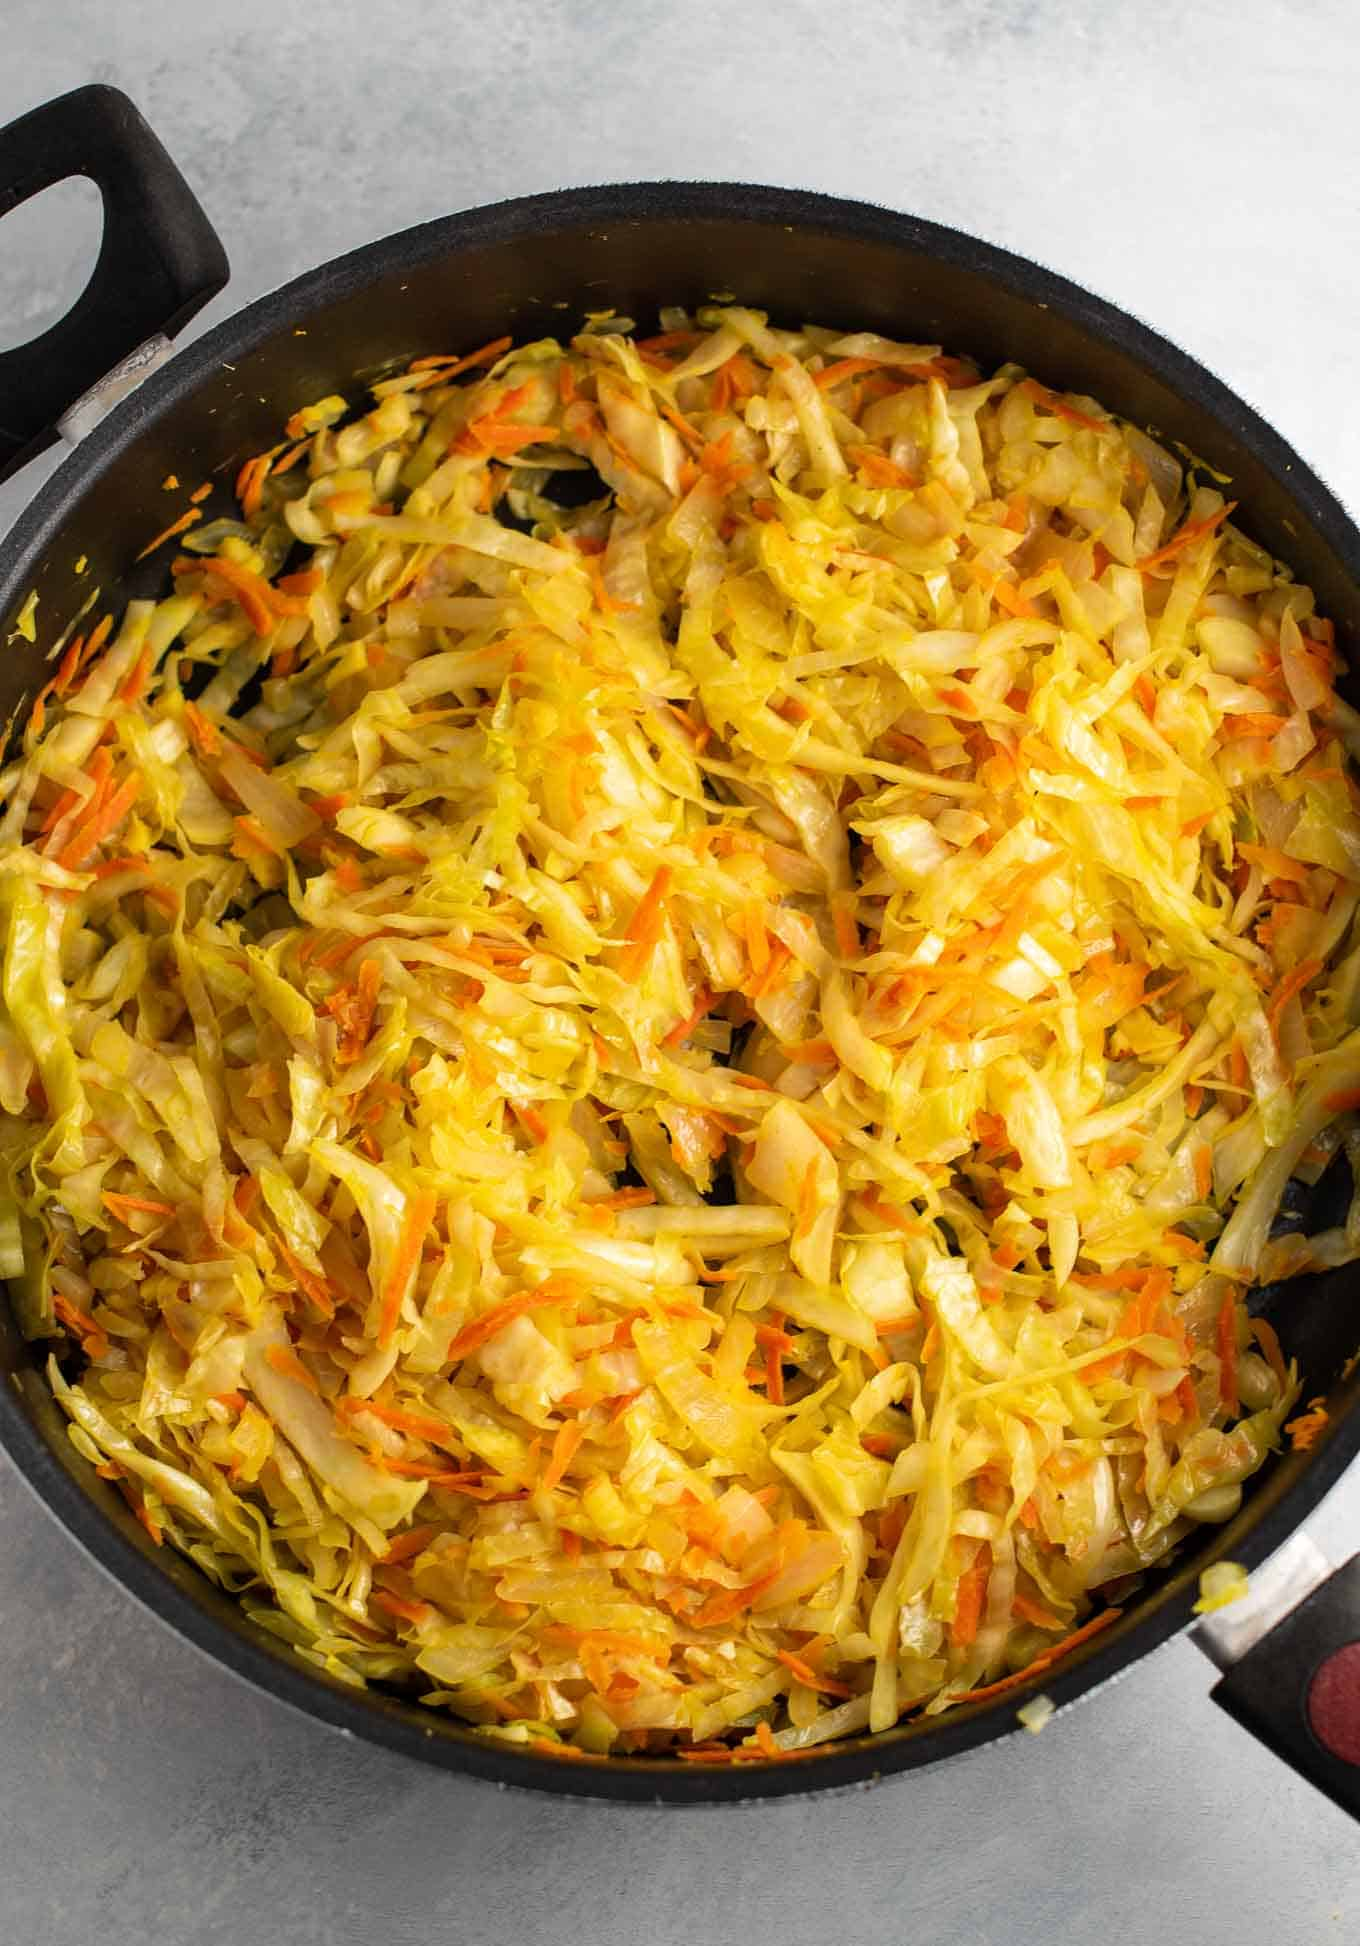 cooked cabbage, carrots, ginger, and onion